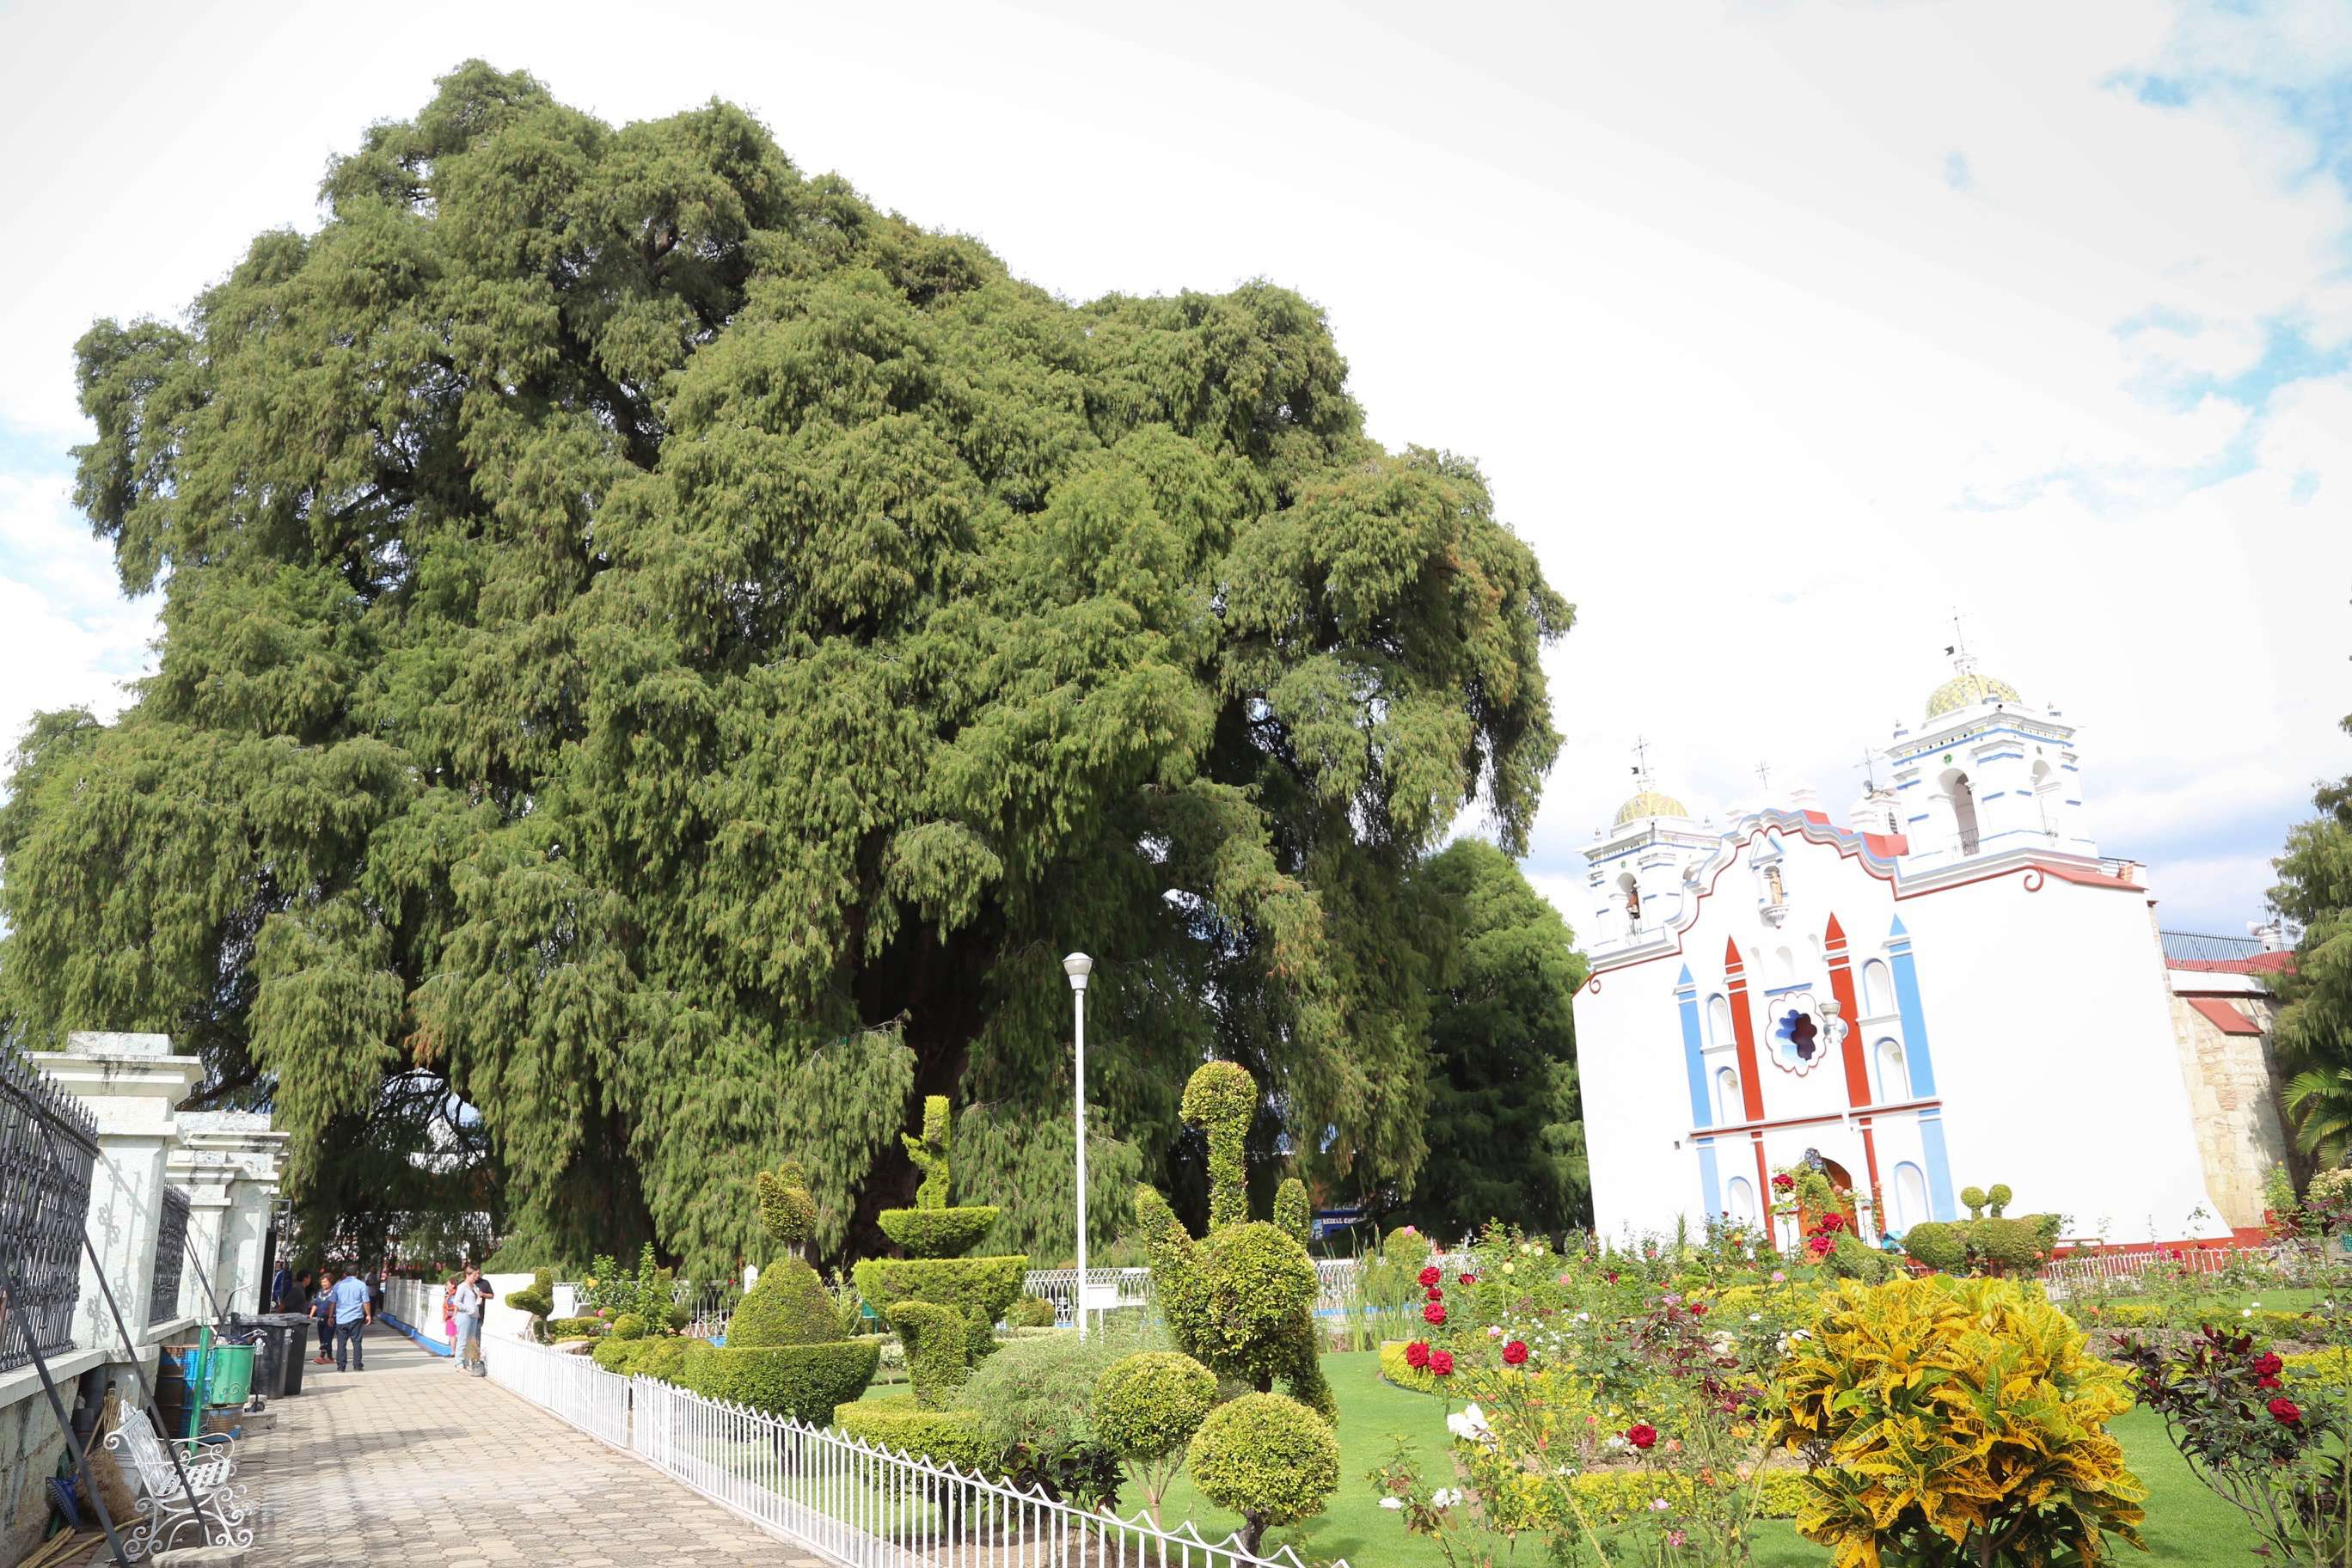 El Tule del Arbol was planted well over 1,000 years ago by a Zapotec priest.